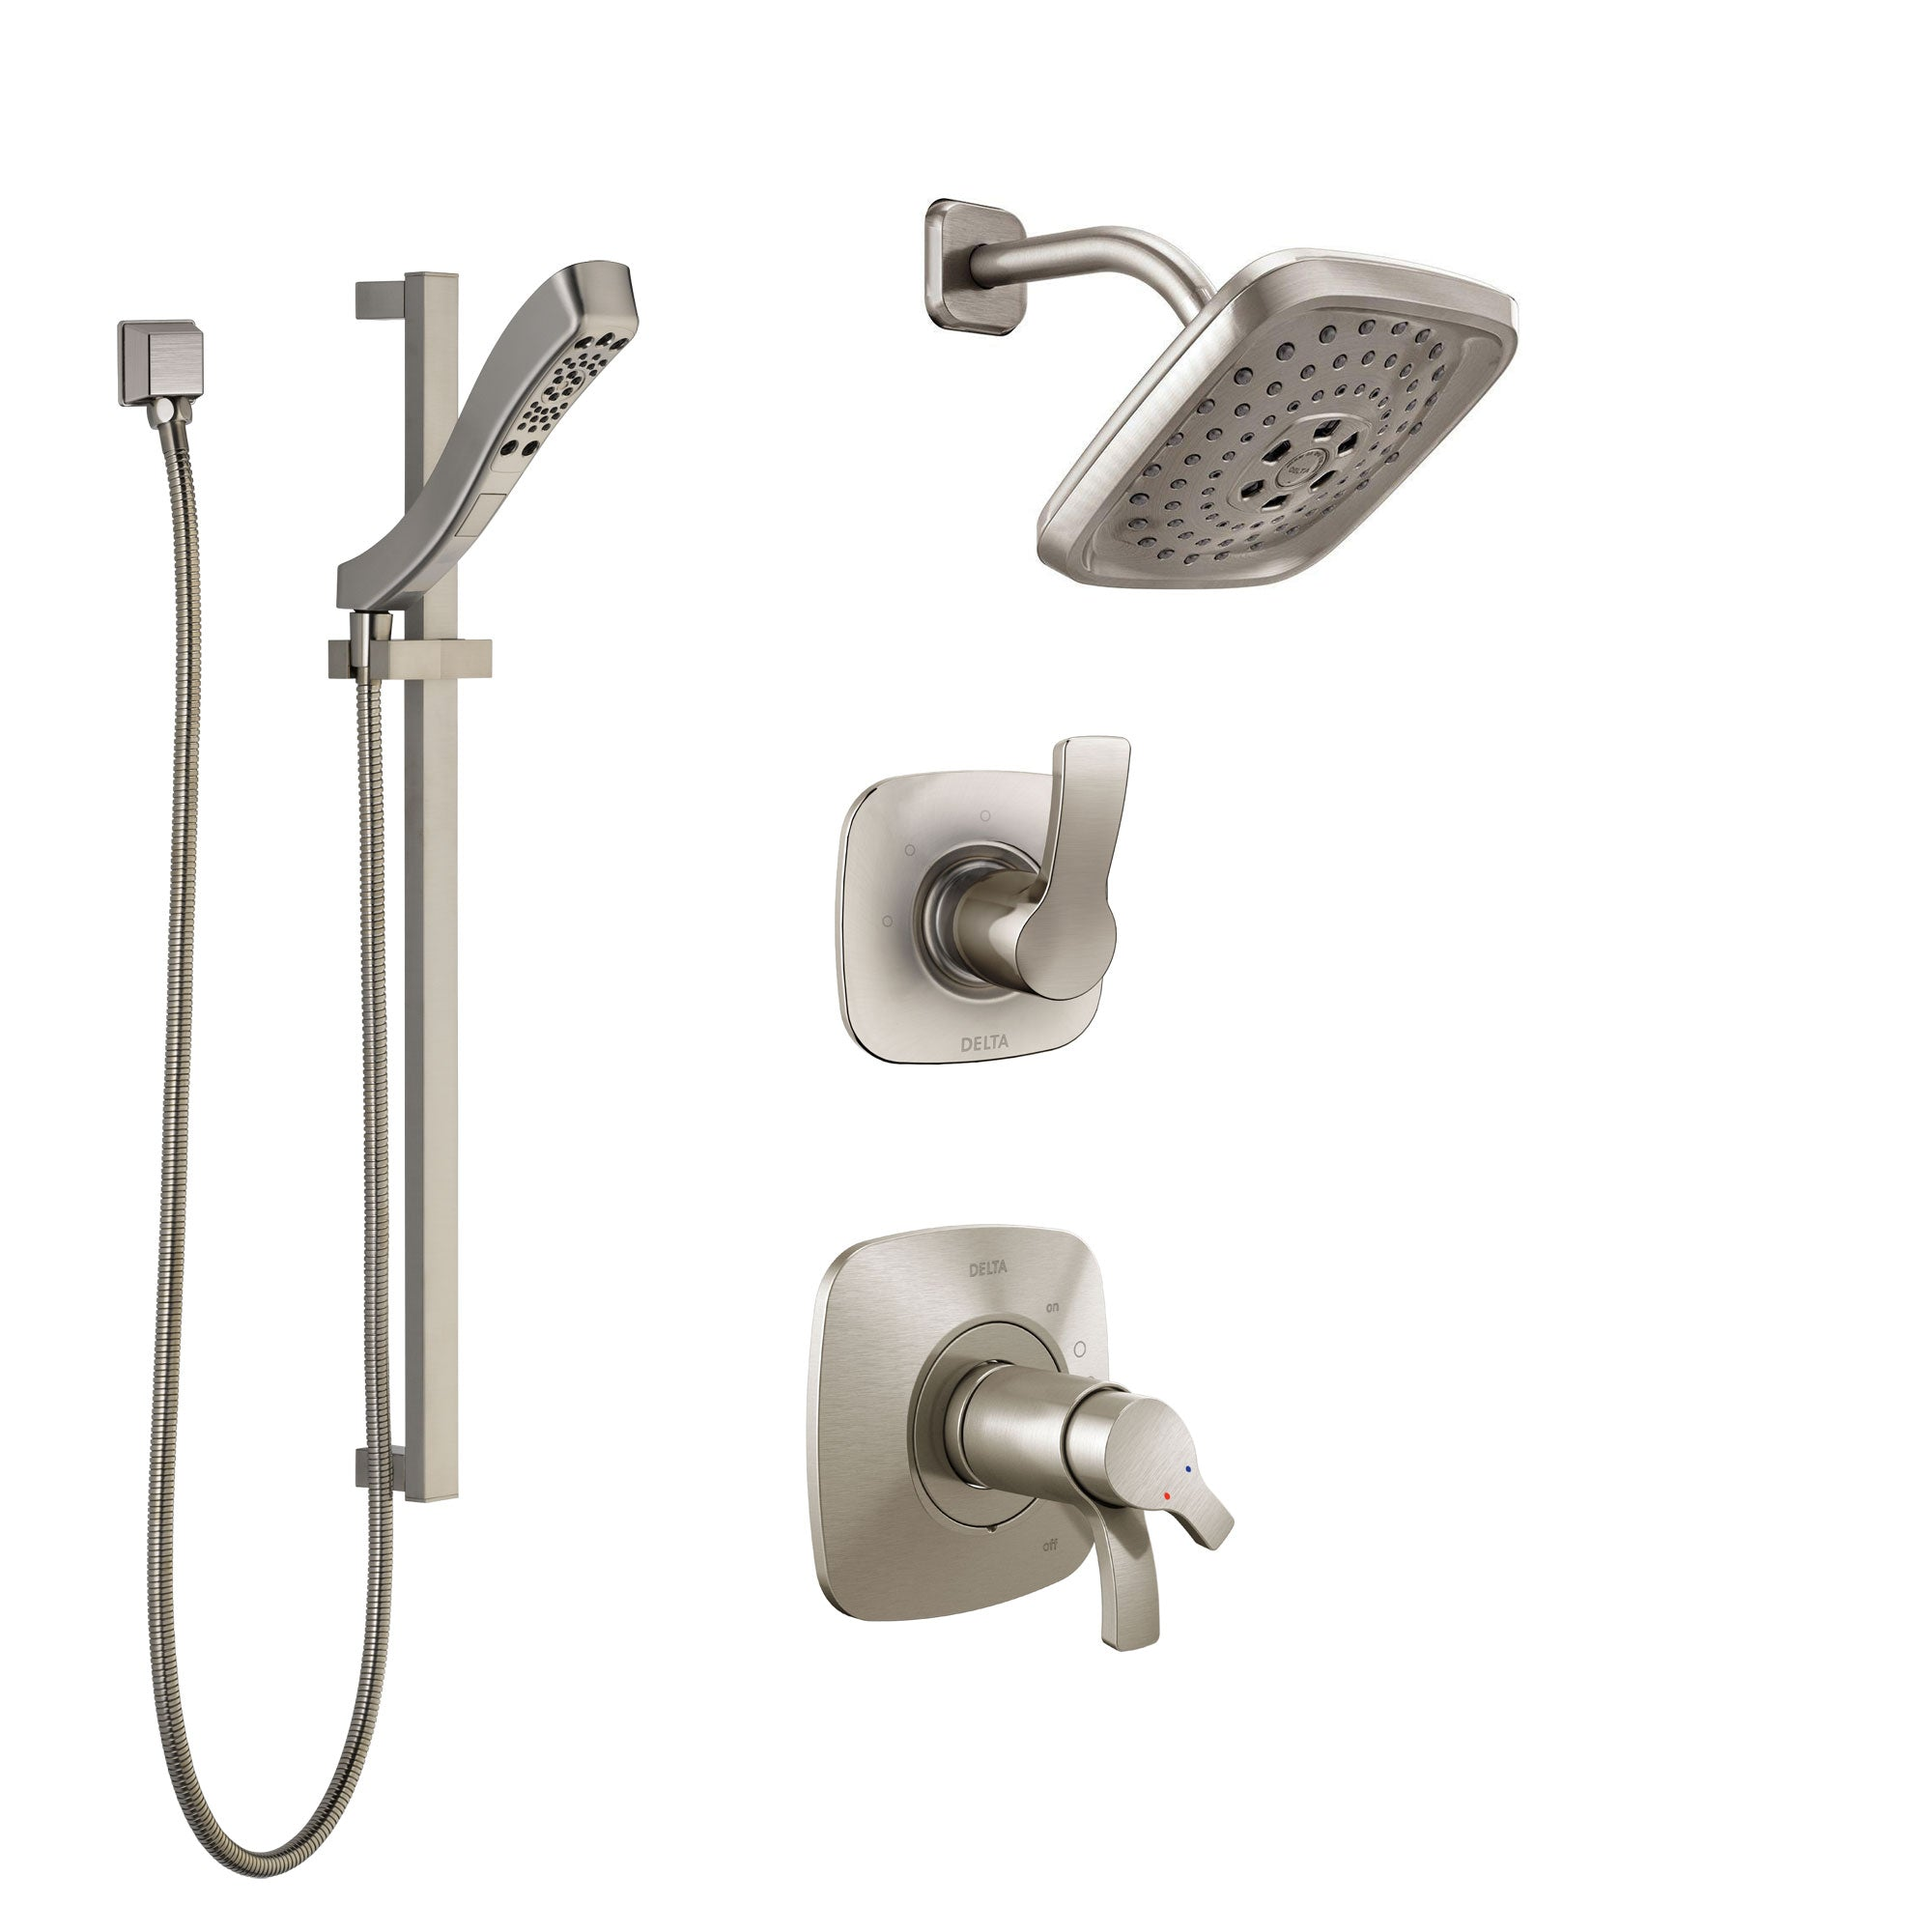 Delta Tesla Dual Thermostatic Control Handle Stainless Steel Finish Shower System, Diverter, Showerhead, and Hand Shower with Slidebar SS17T2522SS4